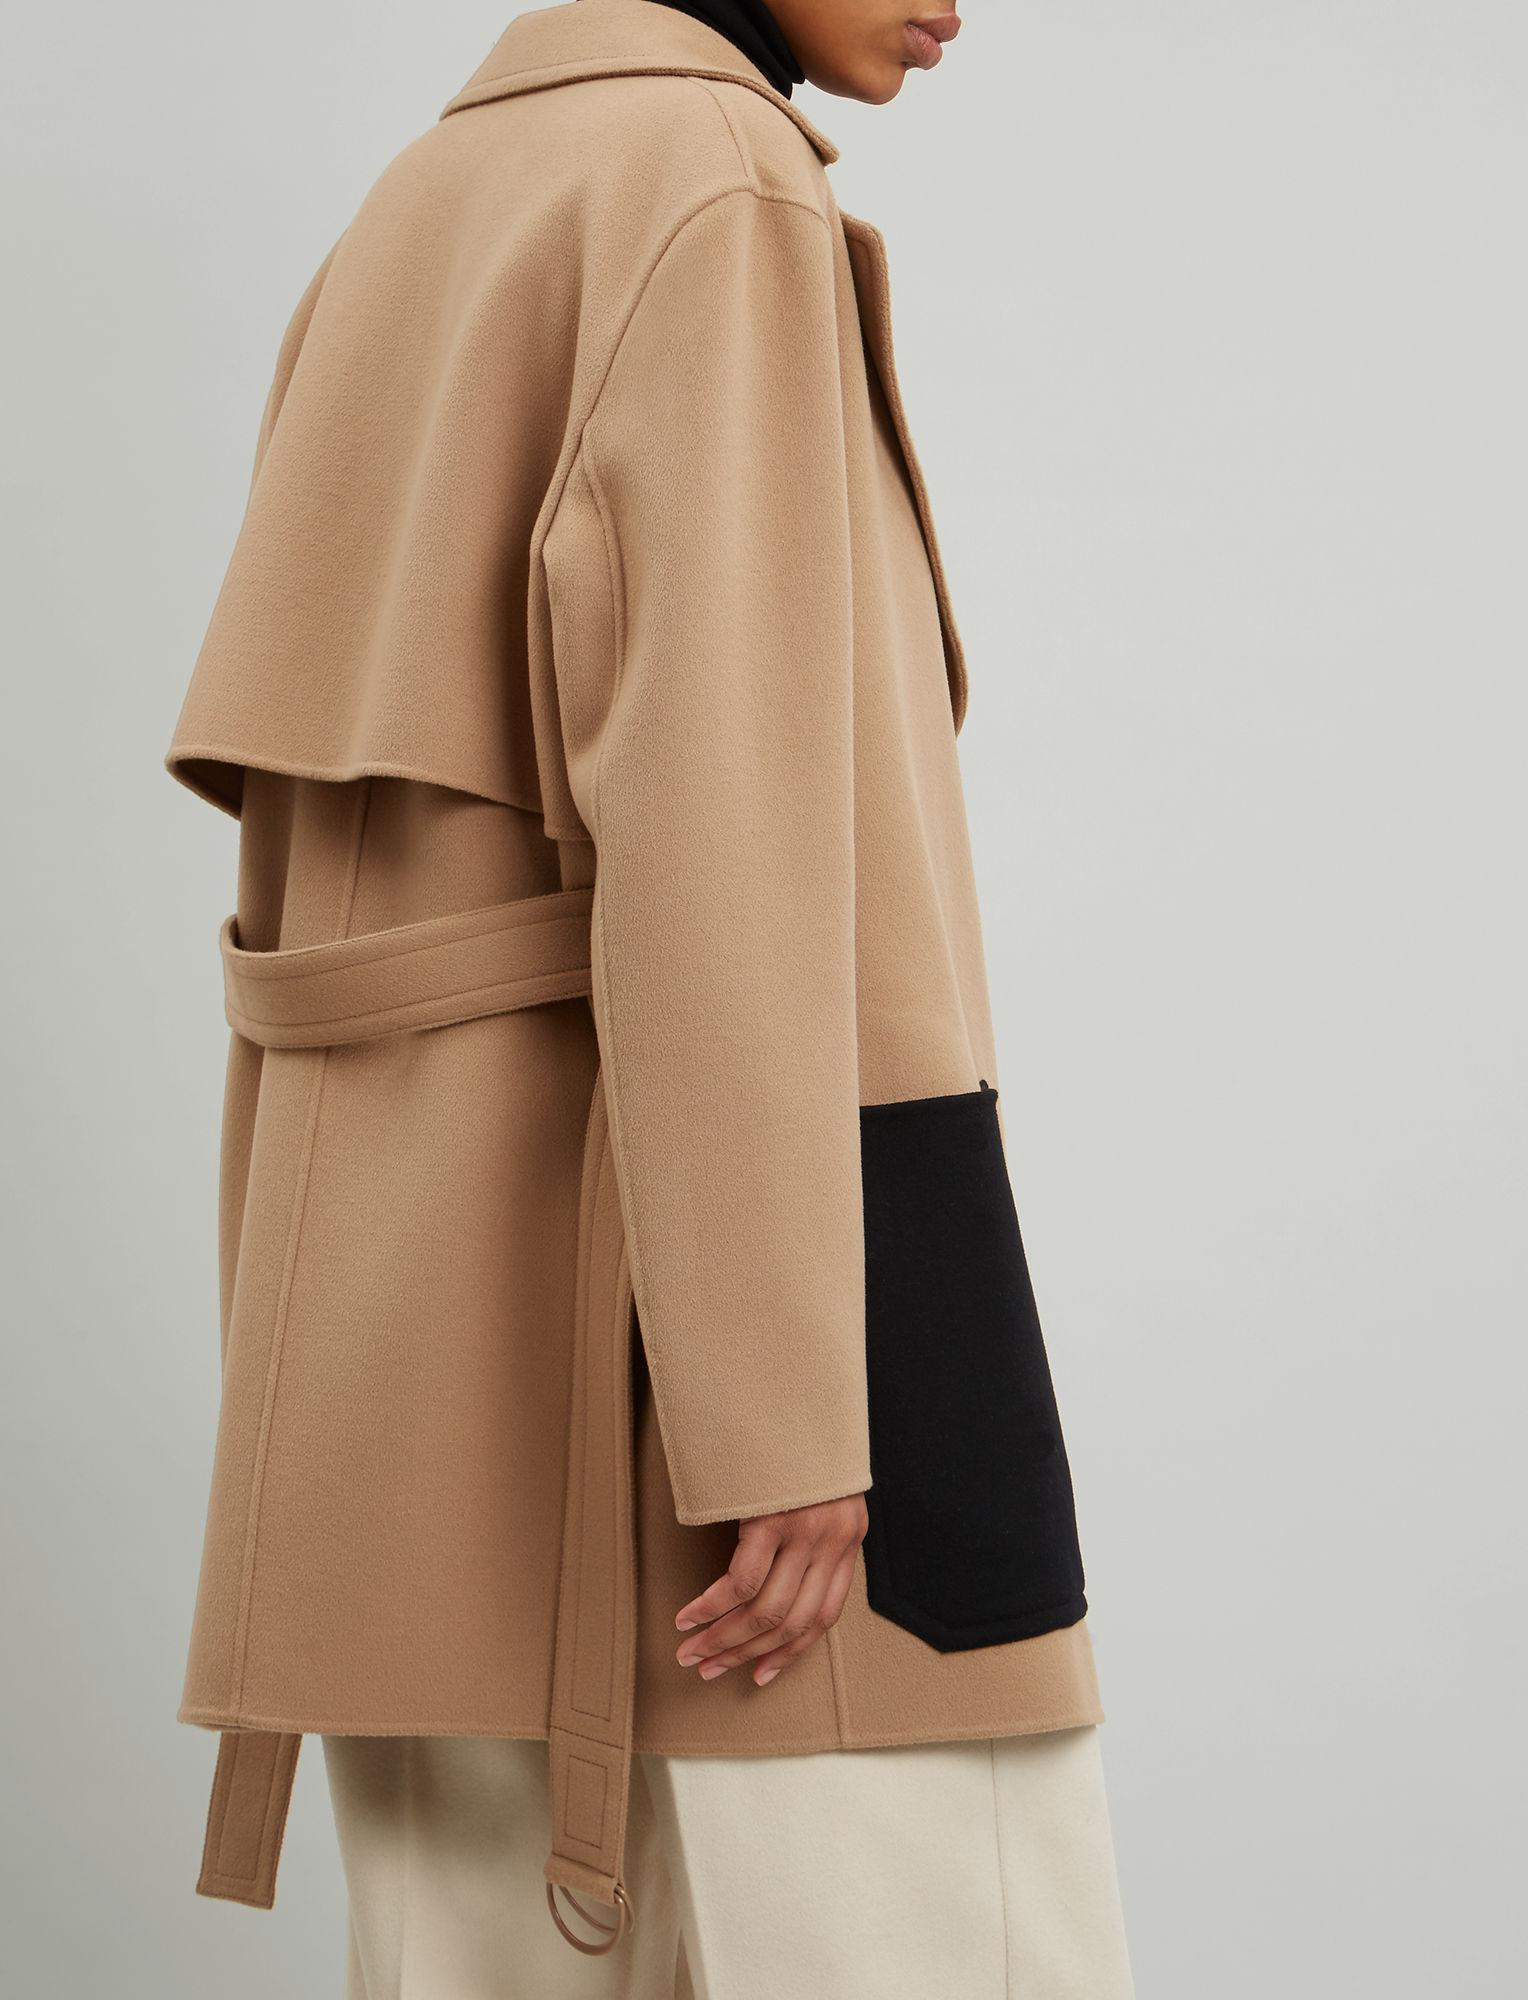 3512f74f24f JOSEPH Marcus Short Luxe Double Wool Coat in Natural - Lyst